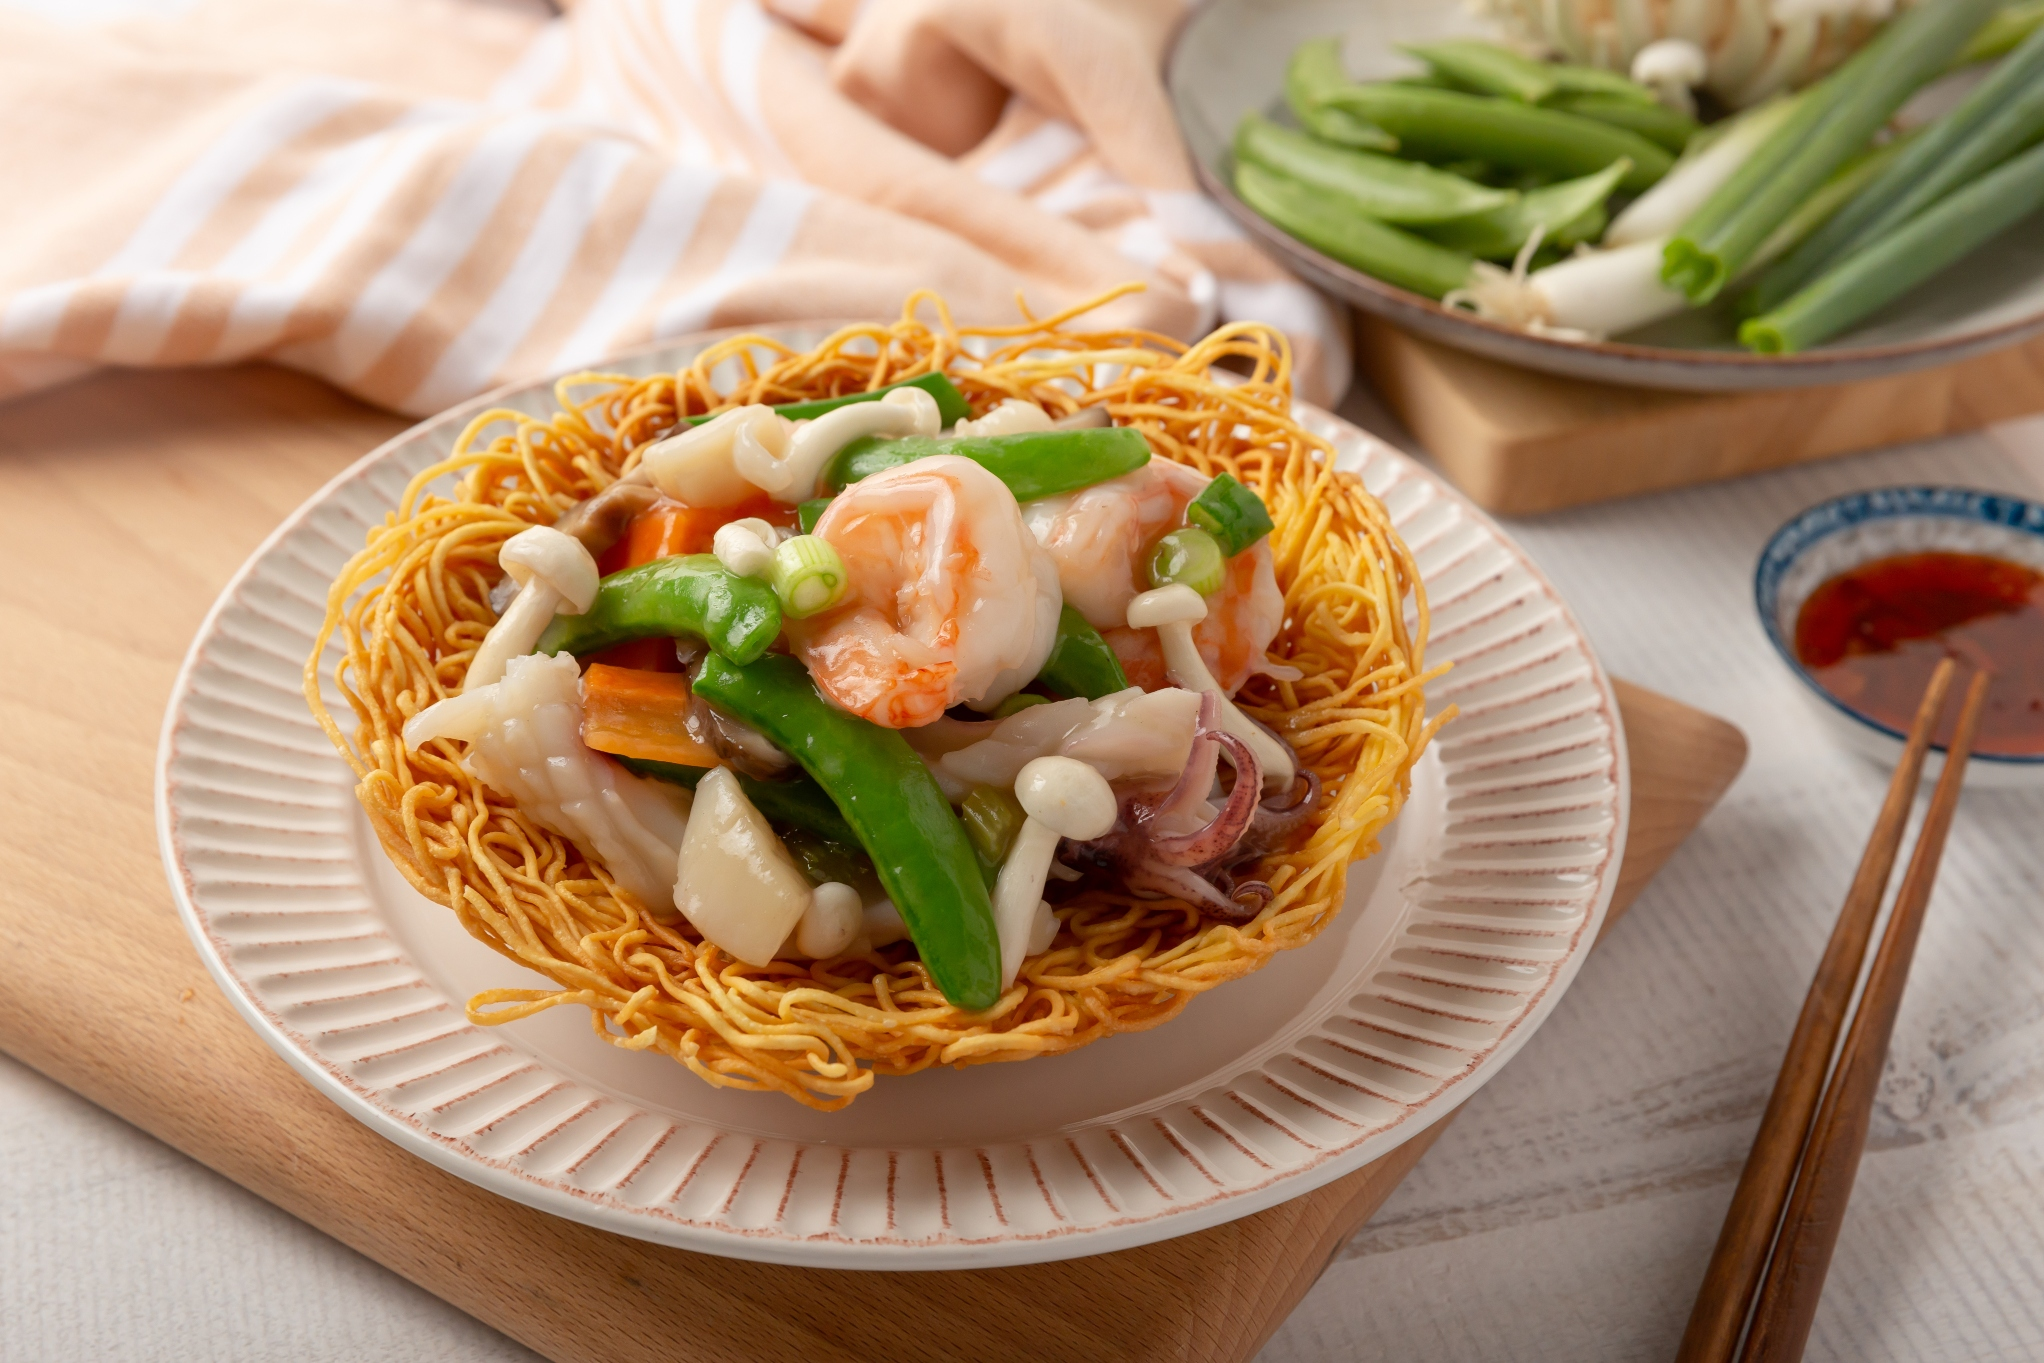 Pan Fried Noodles Cake with Seafood